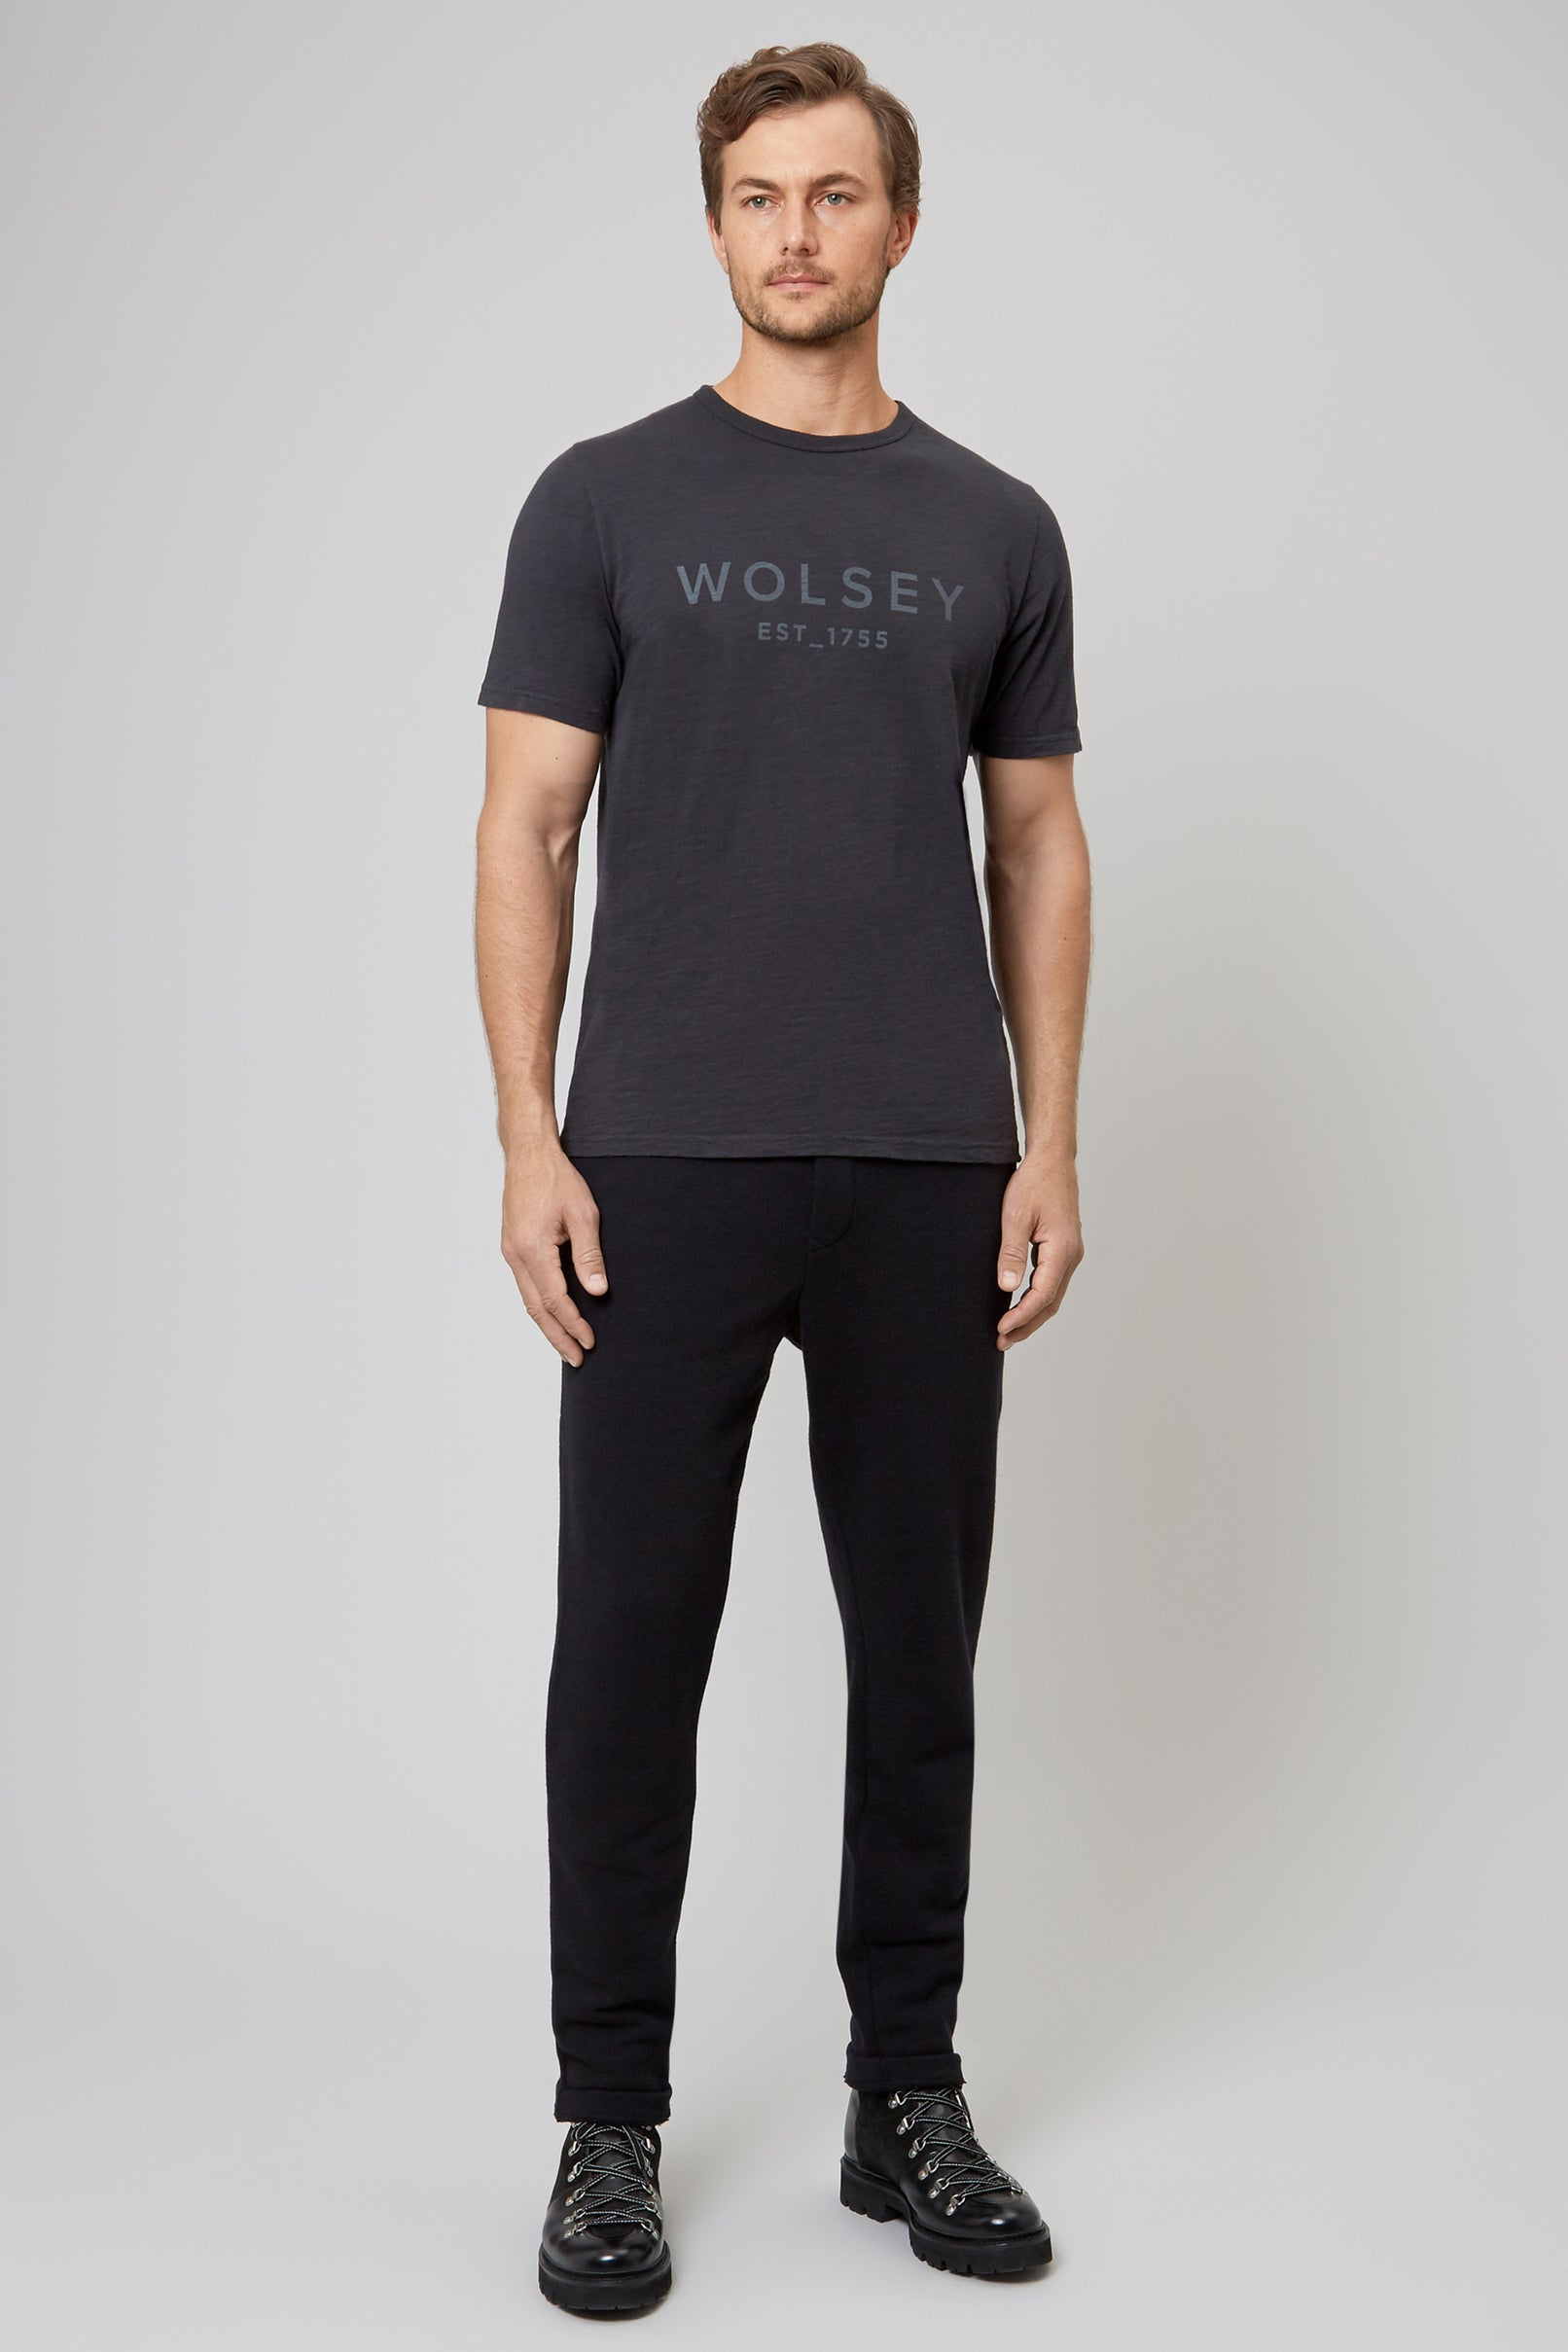 Charcoal Wolsey 1755 Cotton T-Shirt